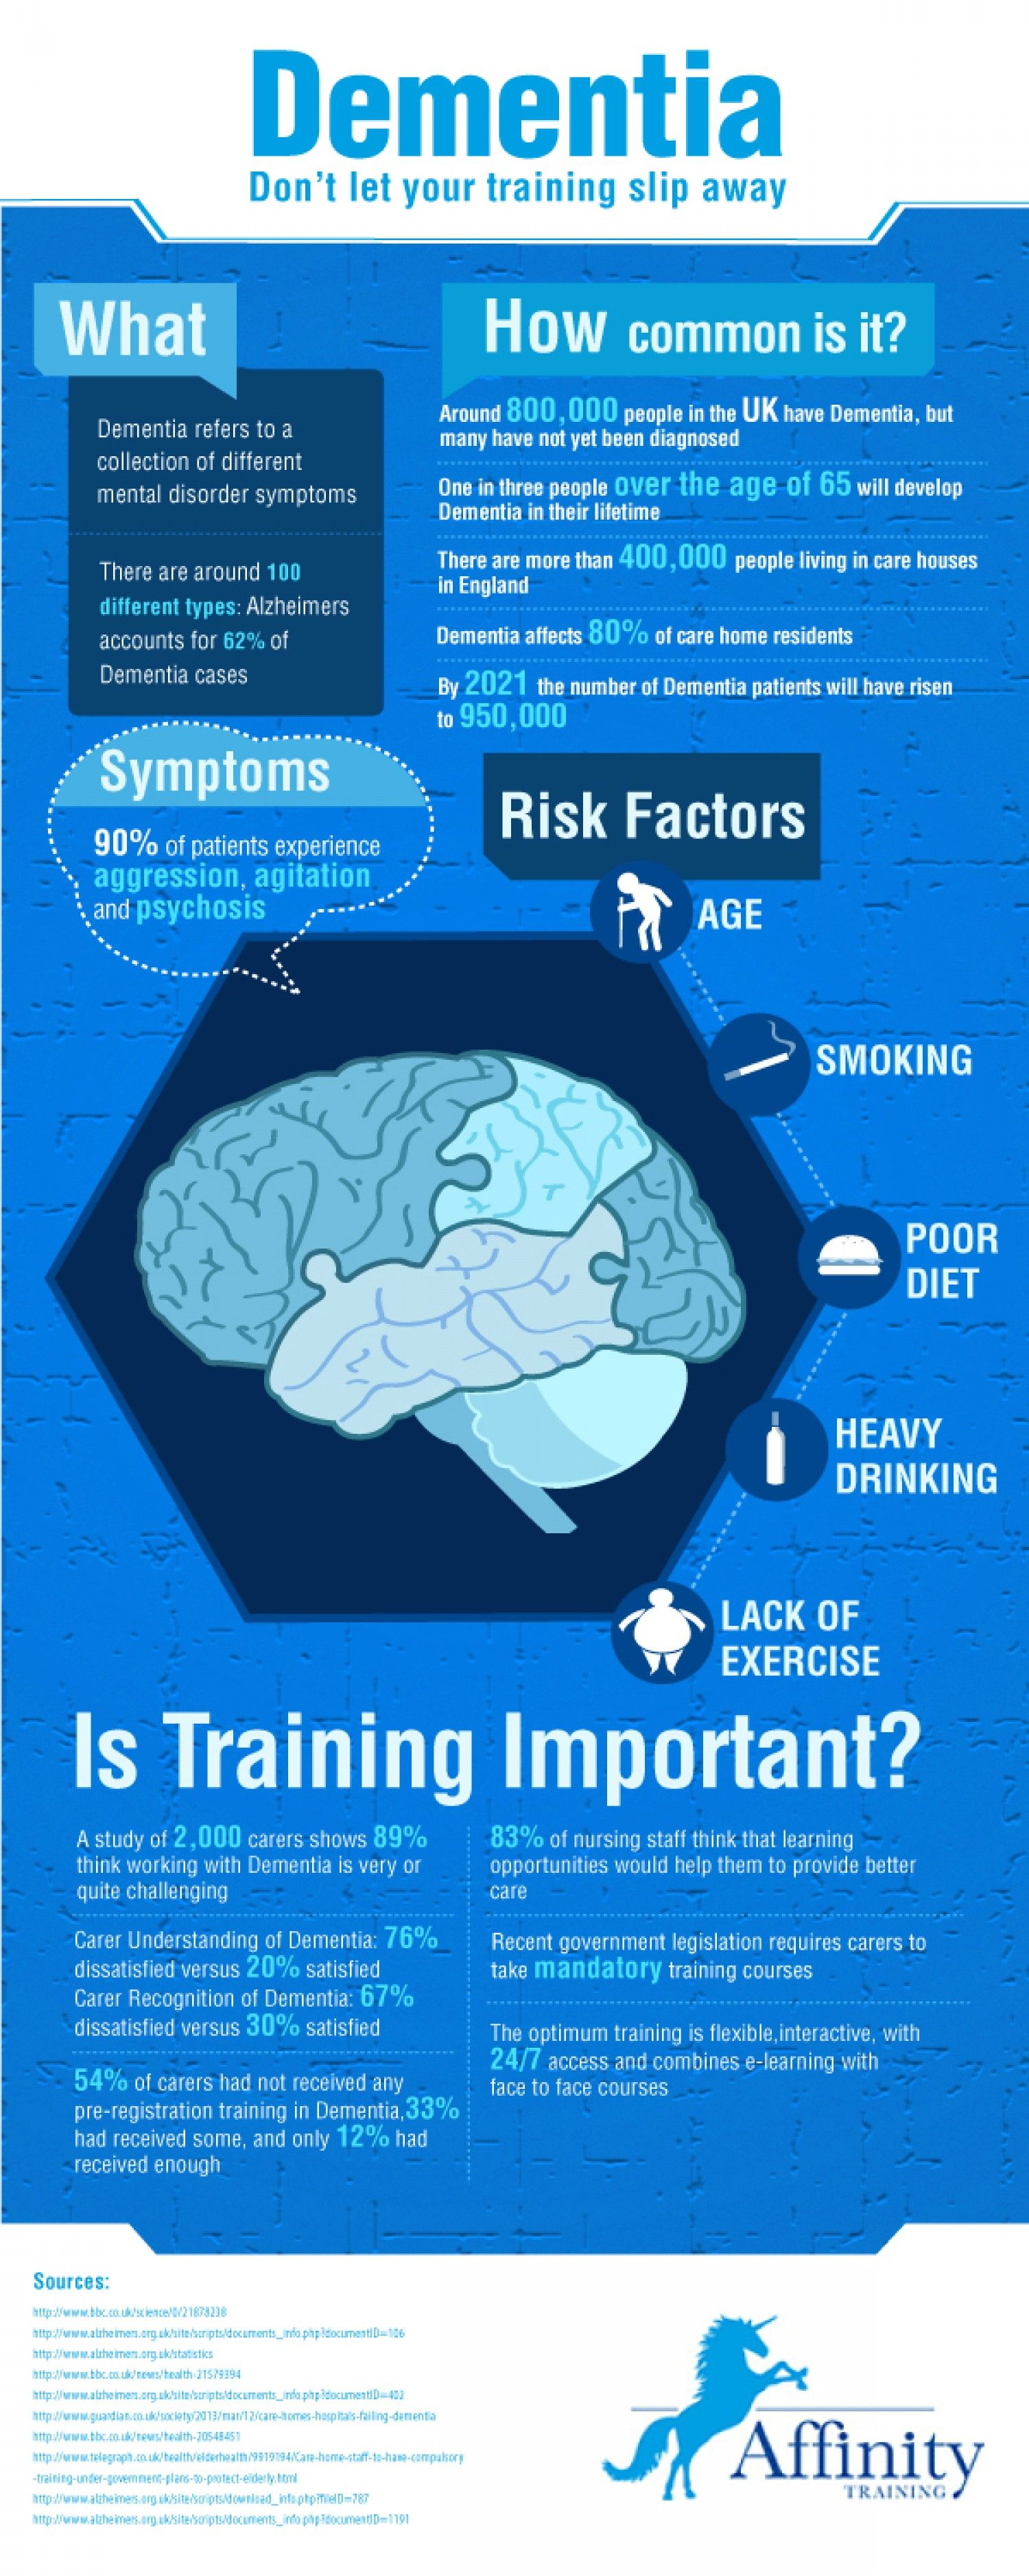 Dementia - Don't let your training slip away Infographic